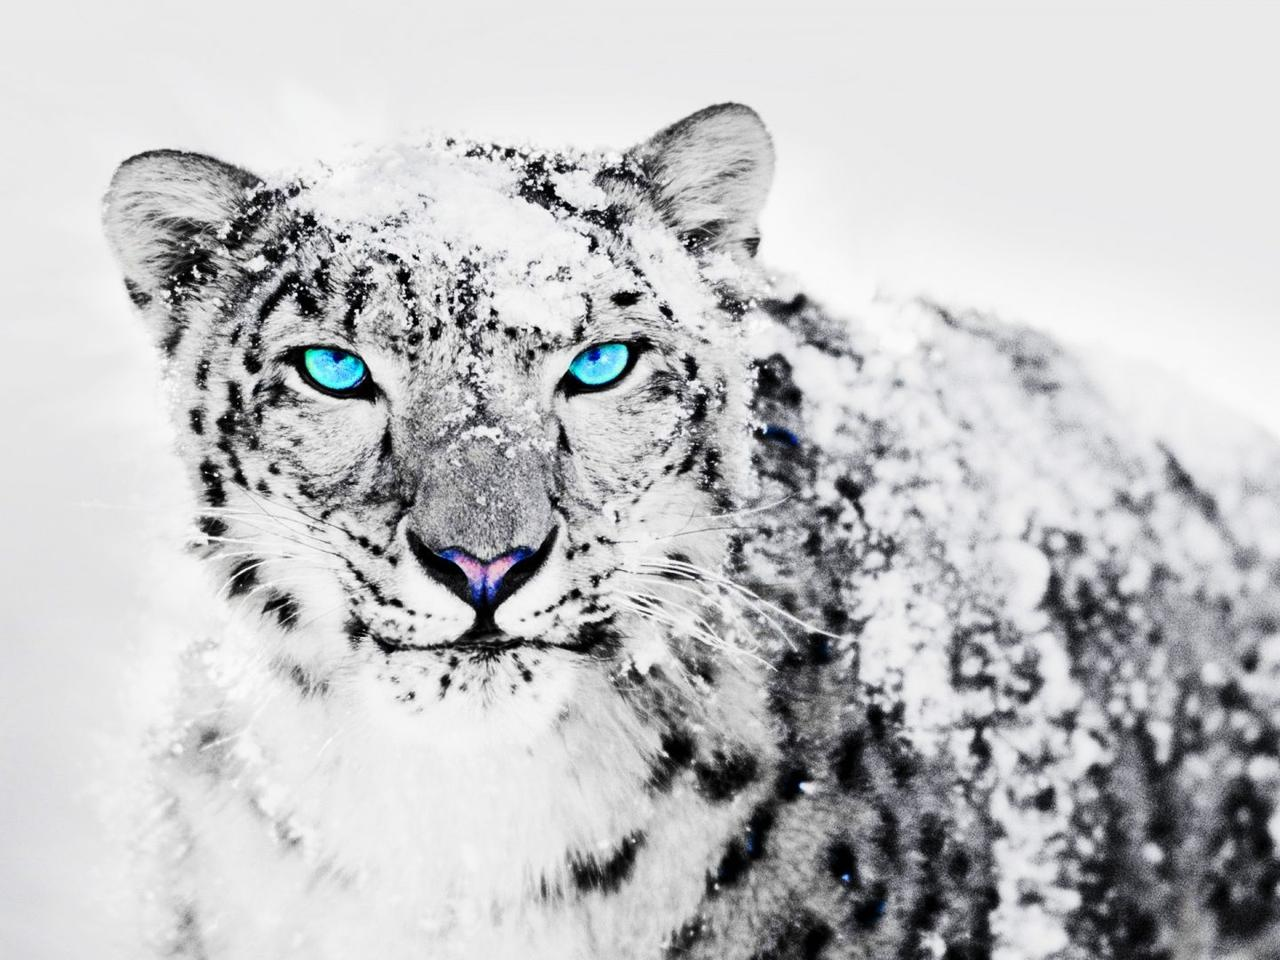 White tiger in snow with blue eyes